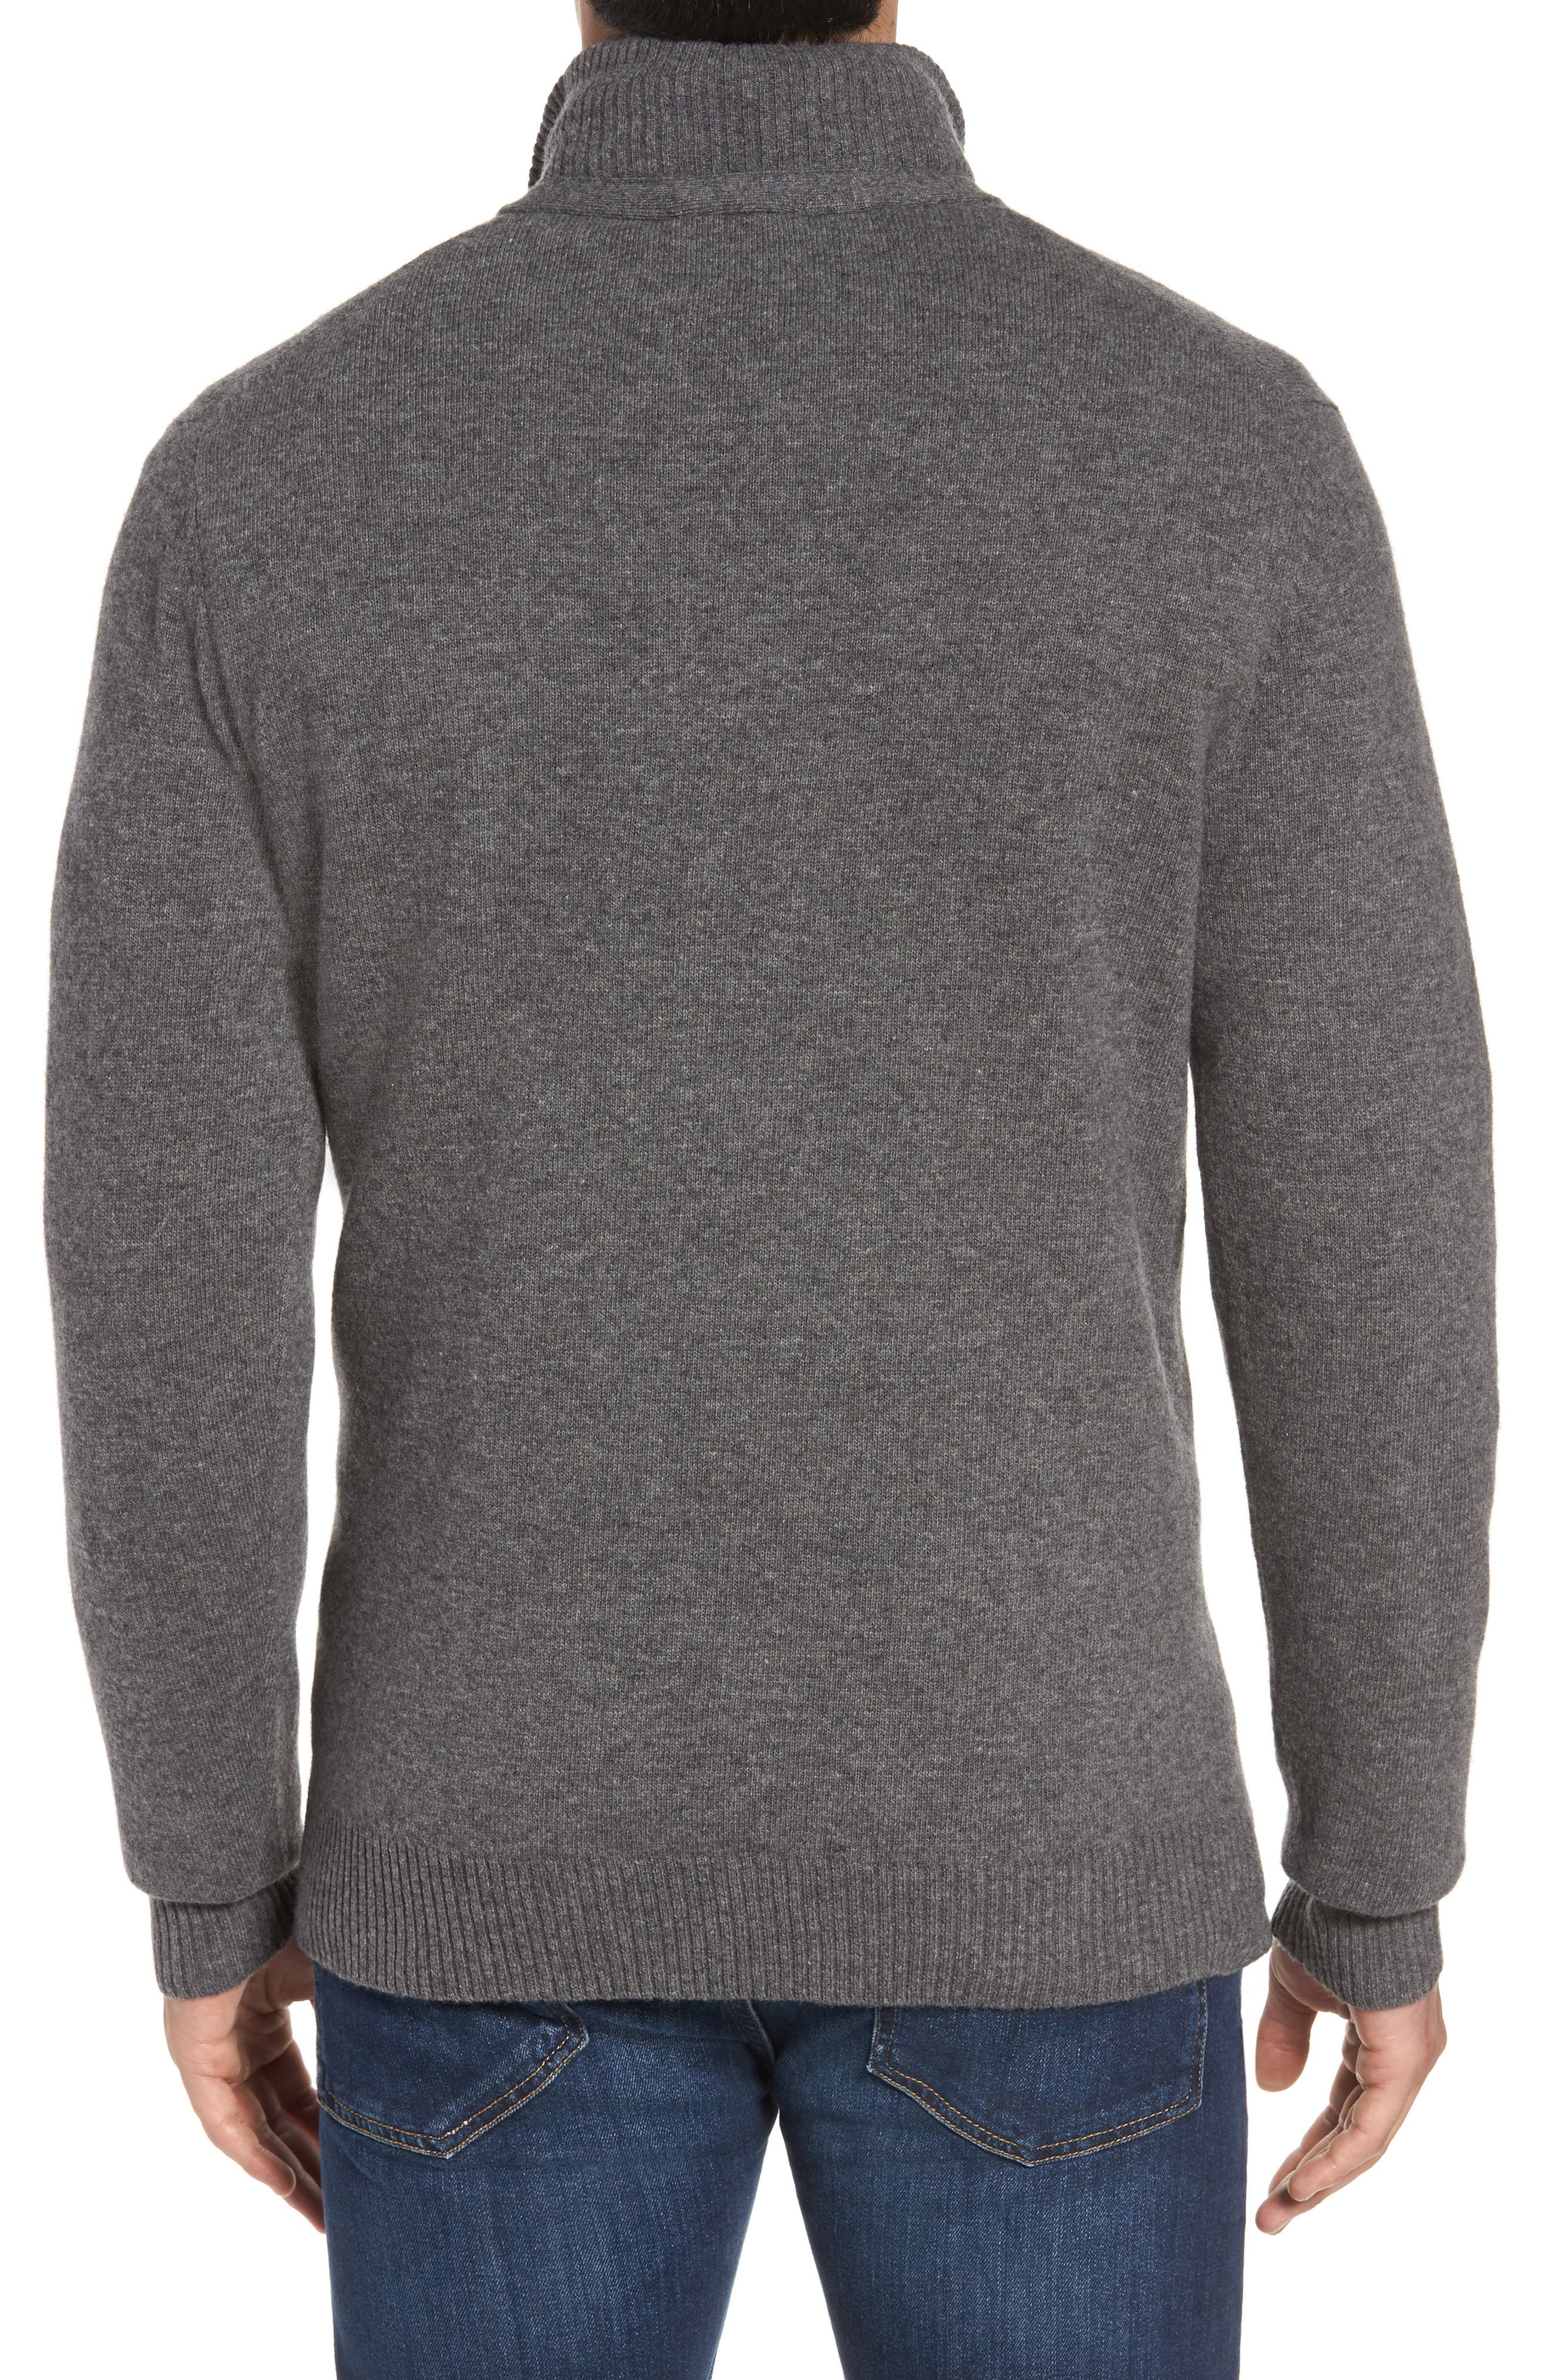 Cape Rodney Lambswool Pullover,                             Alternate thumbnail 2, color,                             CHARCOAL